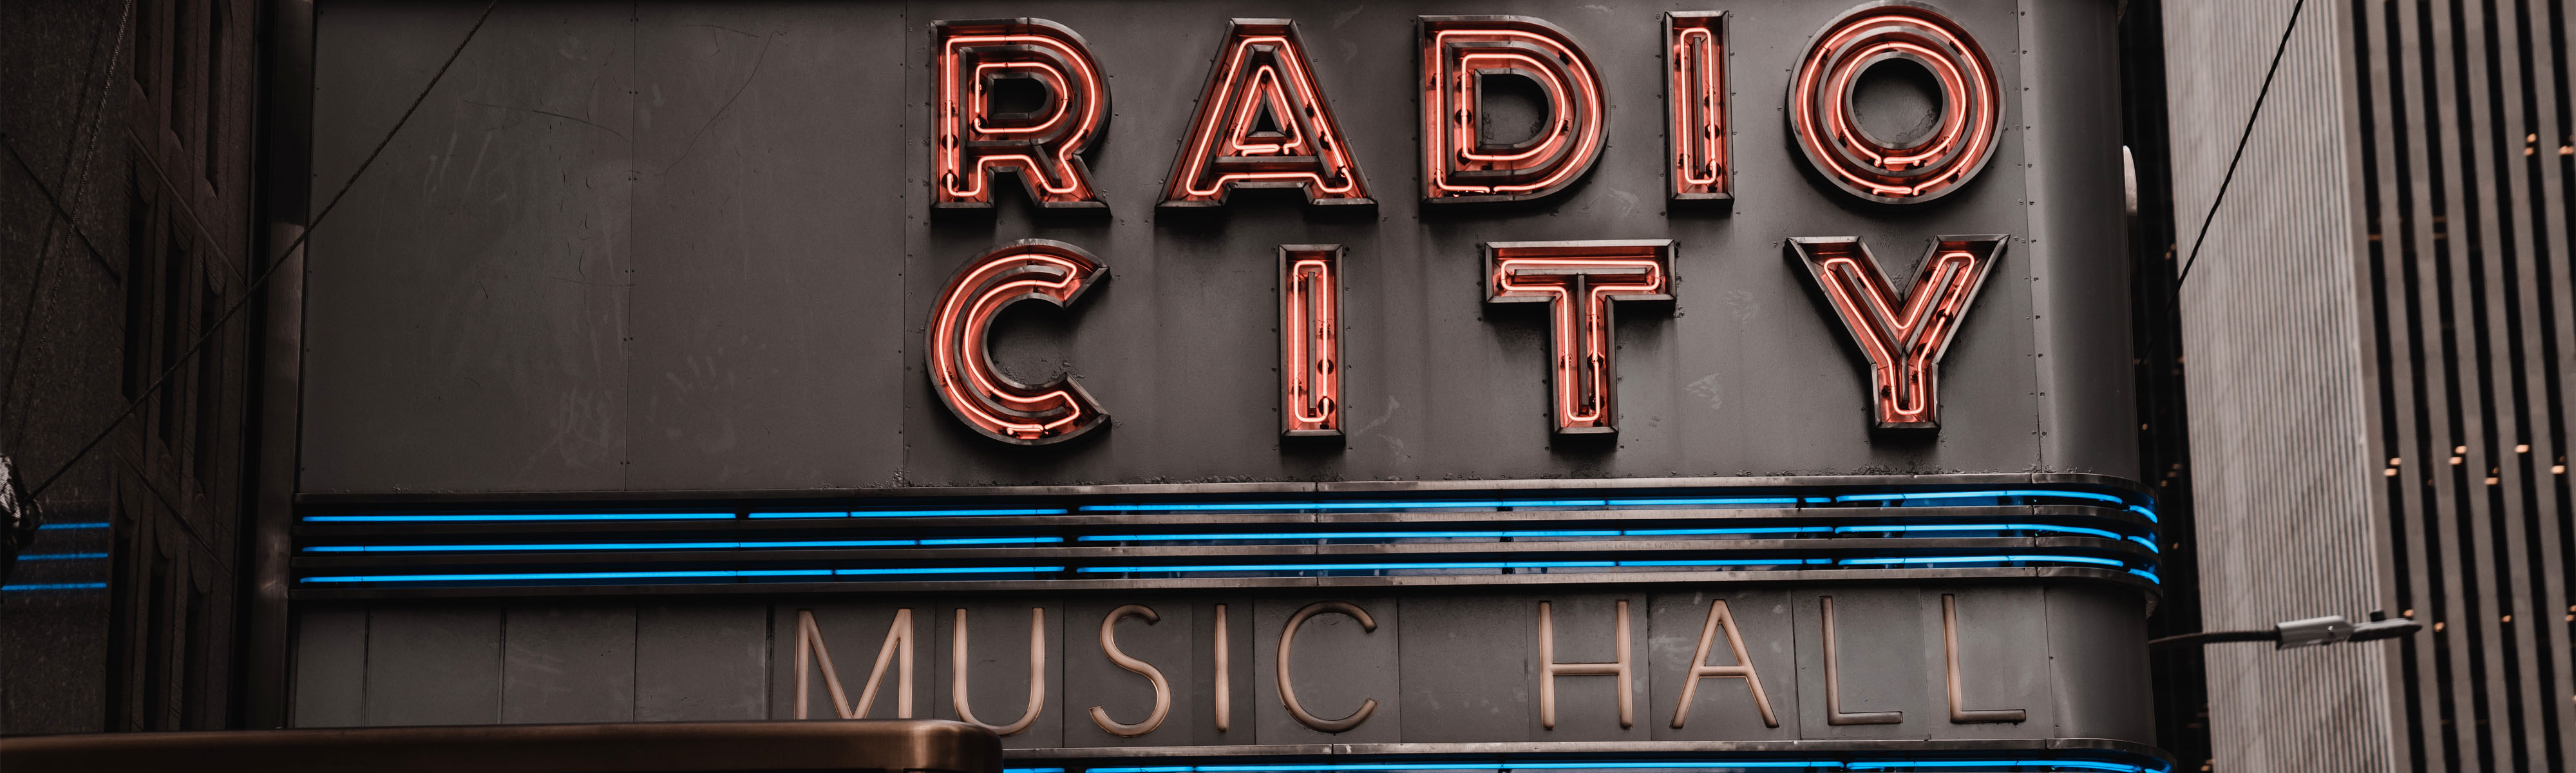 Slider - Radio - City Hall